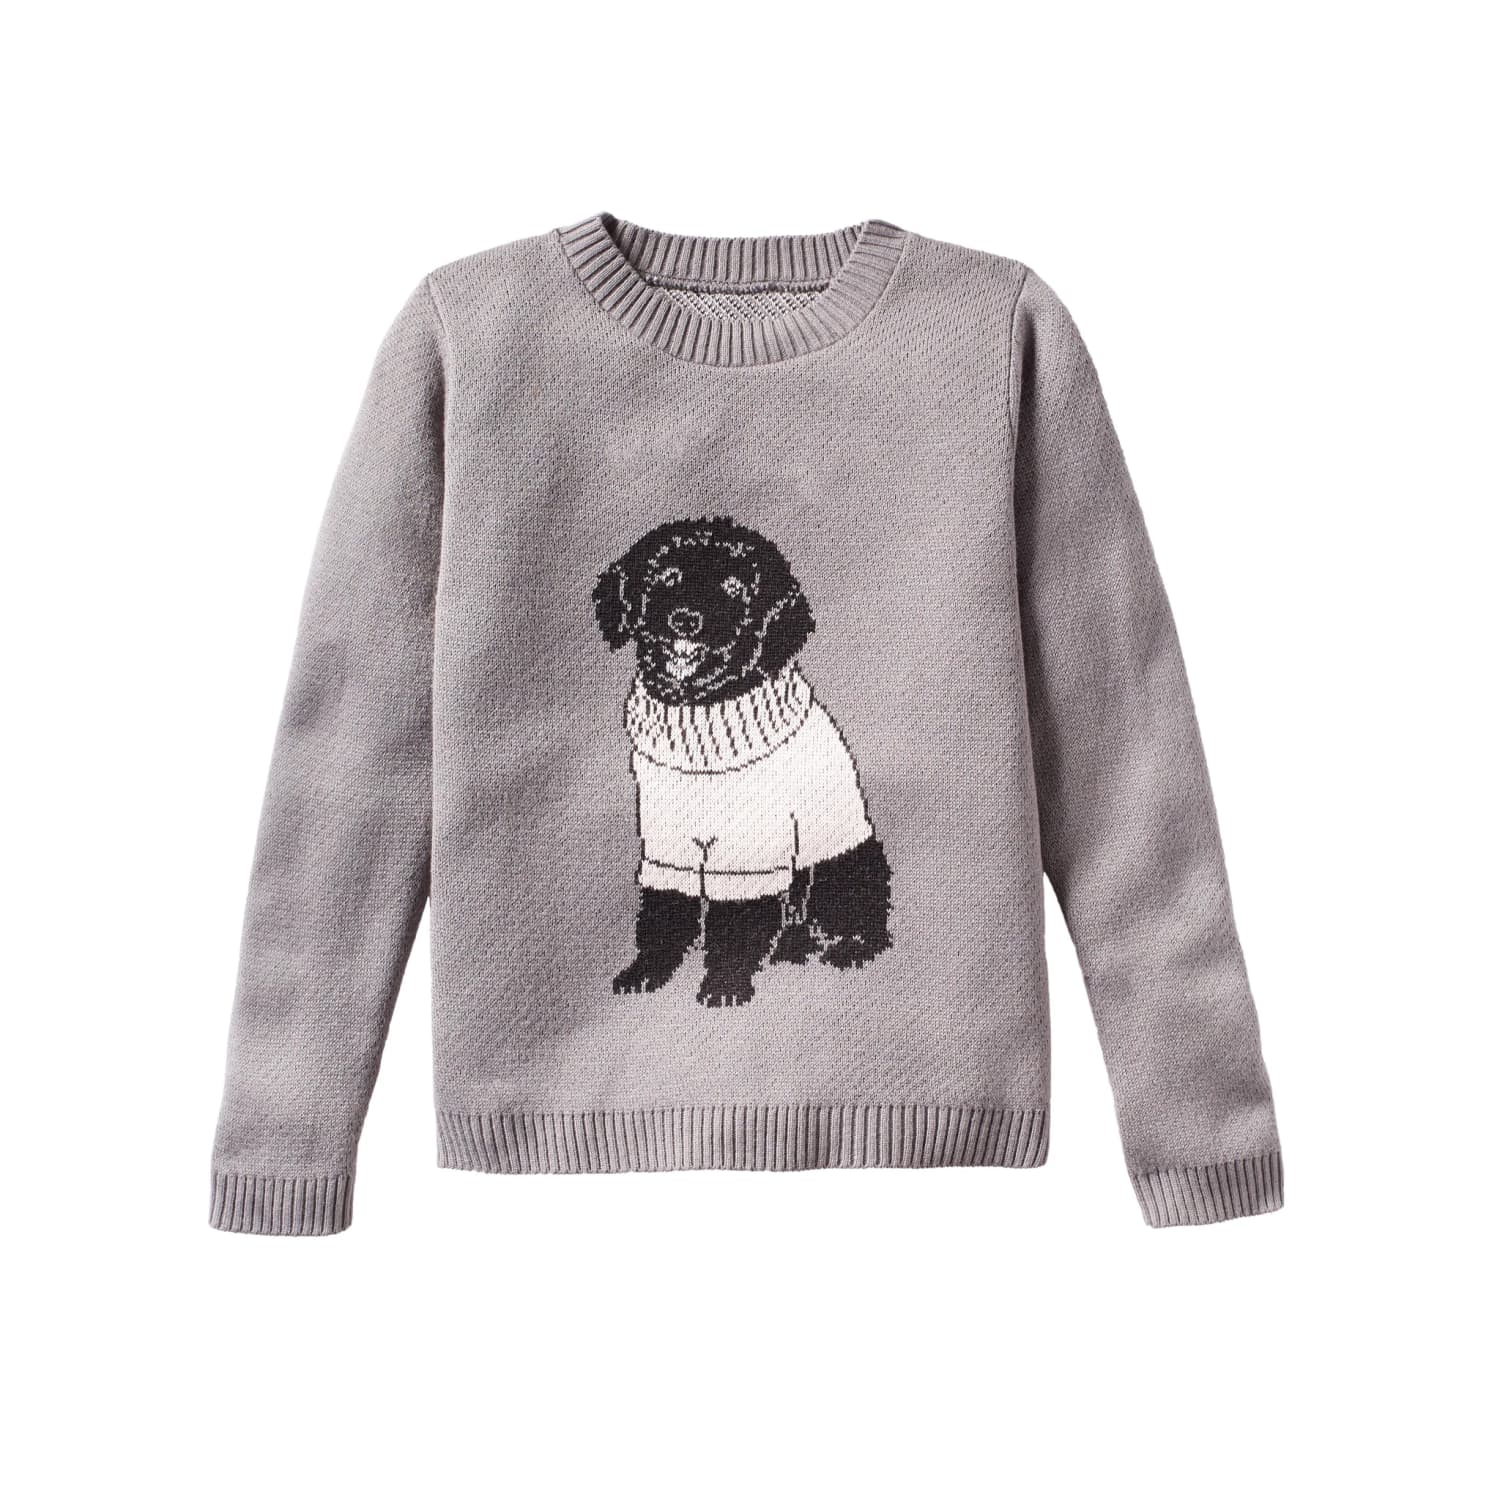 You Can Buy a Customized Sweater Featuring Your Dog Wearing a Sweater